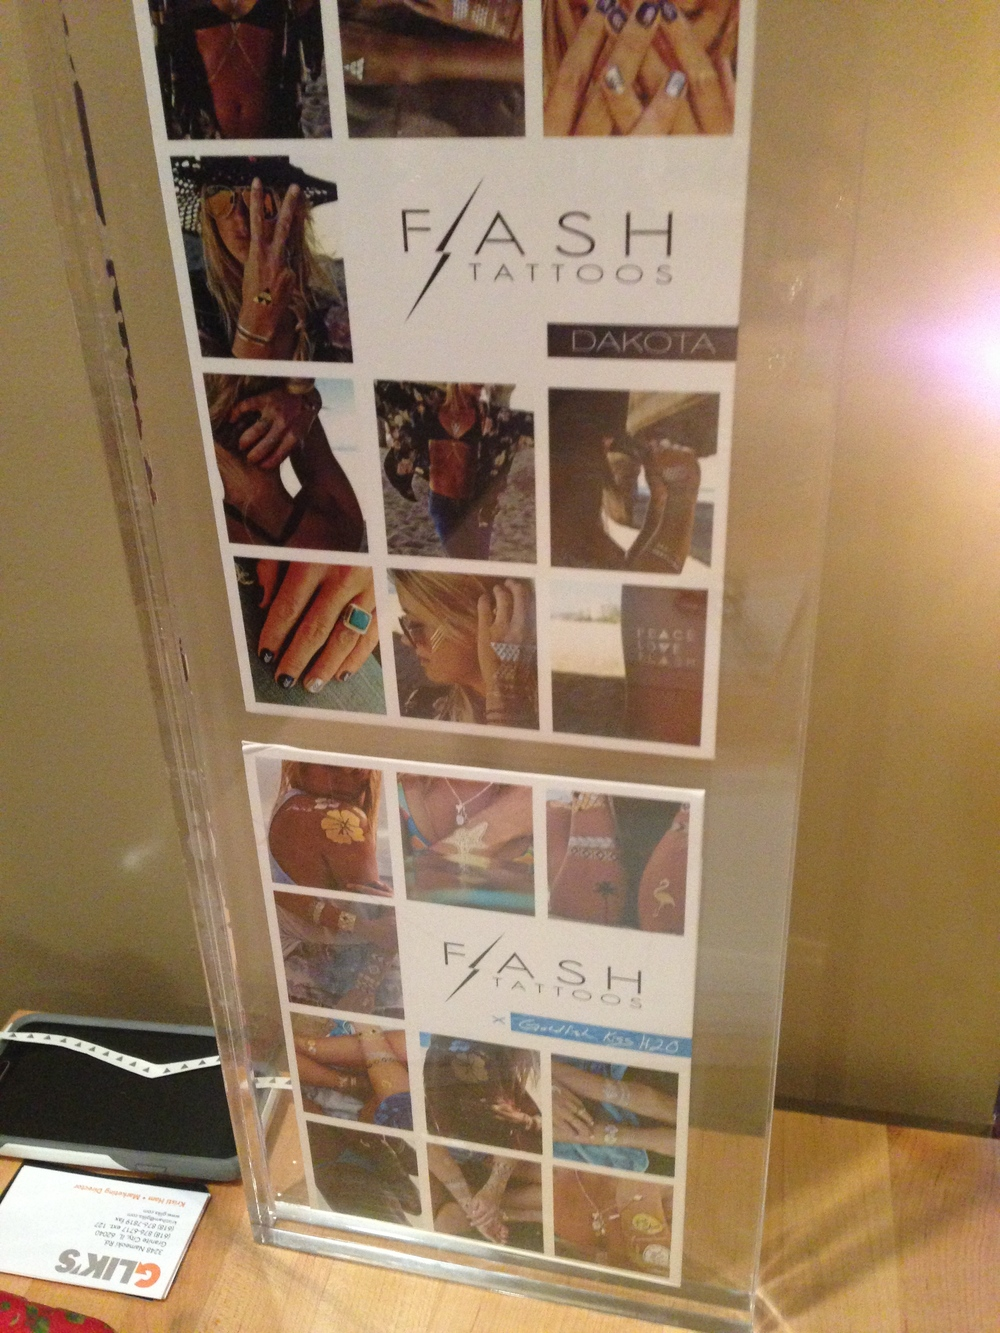 Turns out they are called Flash Tattoos and you can get them at Glik's!